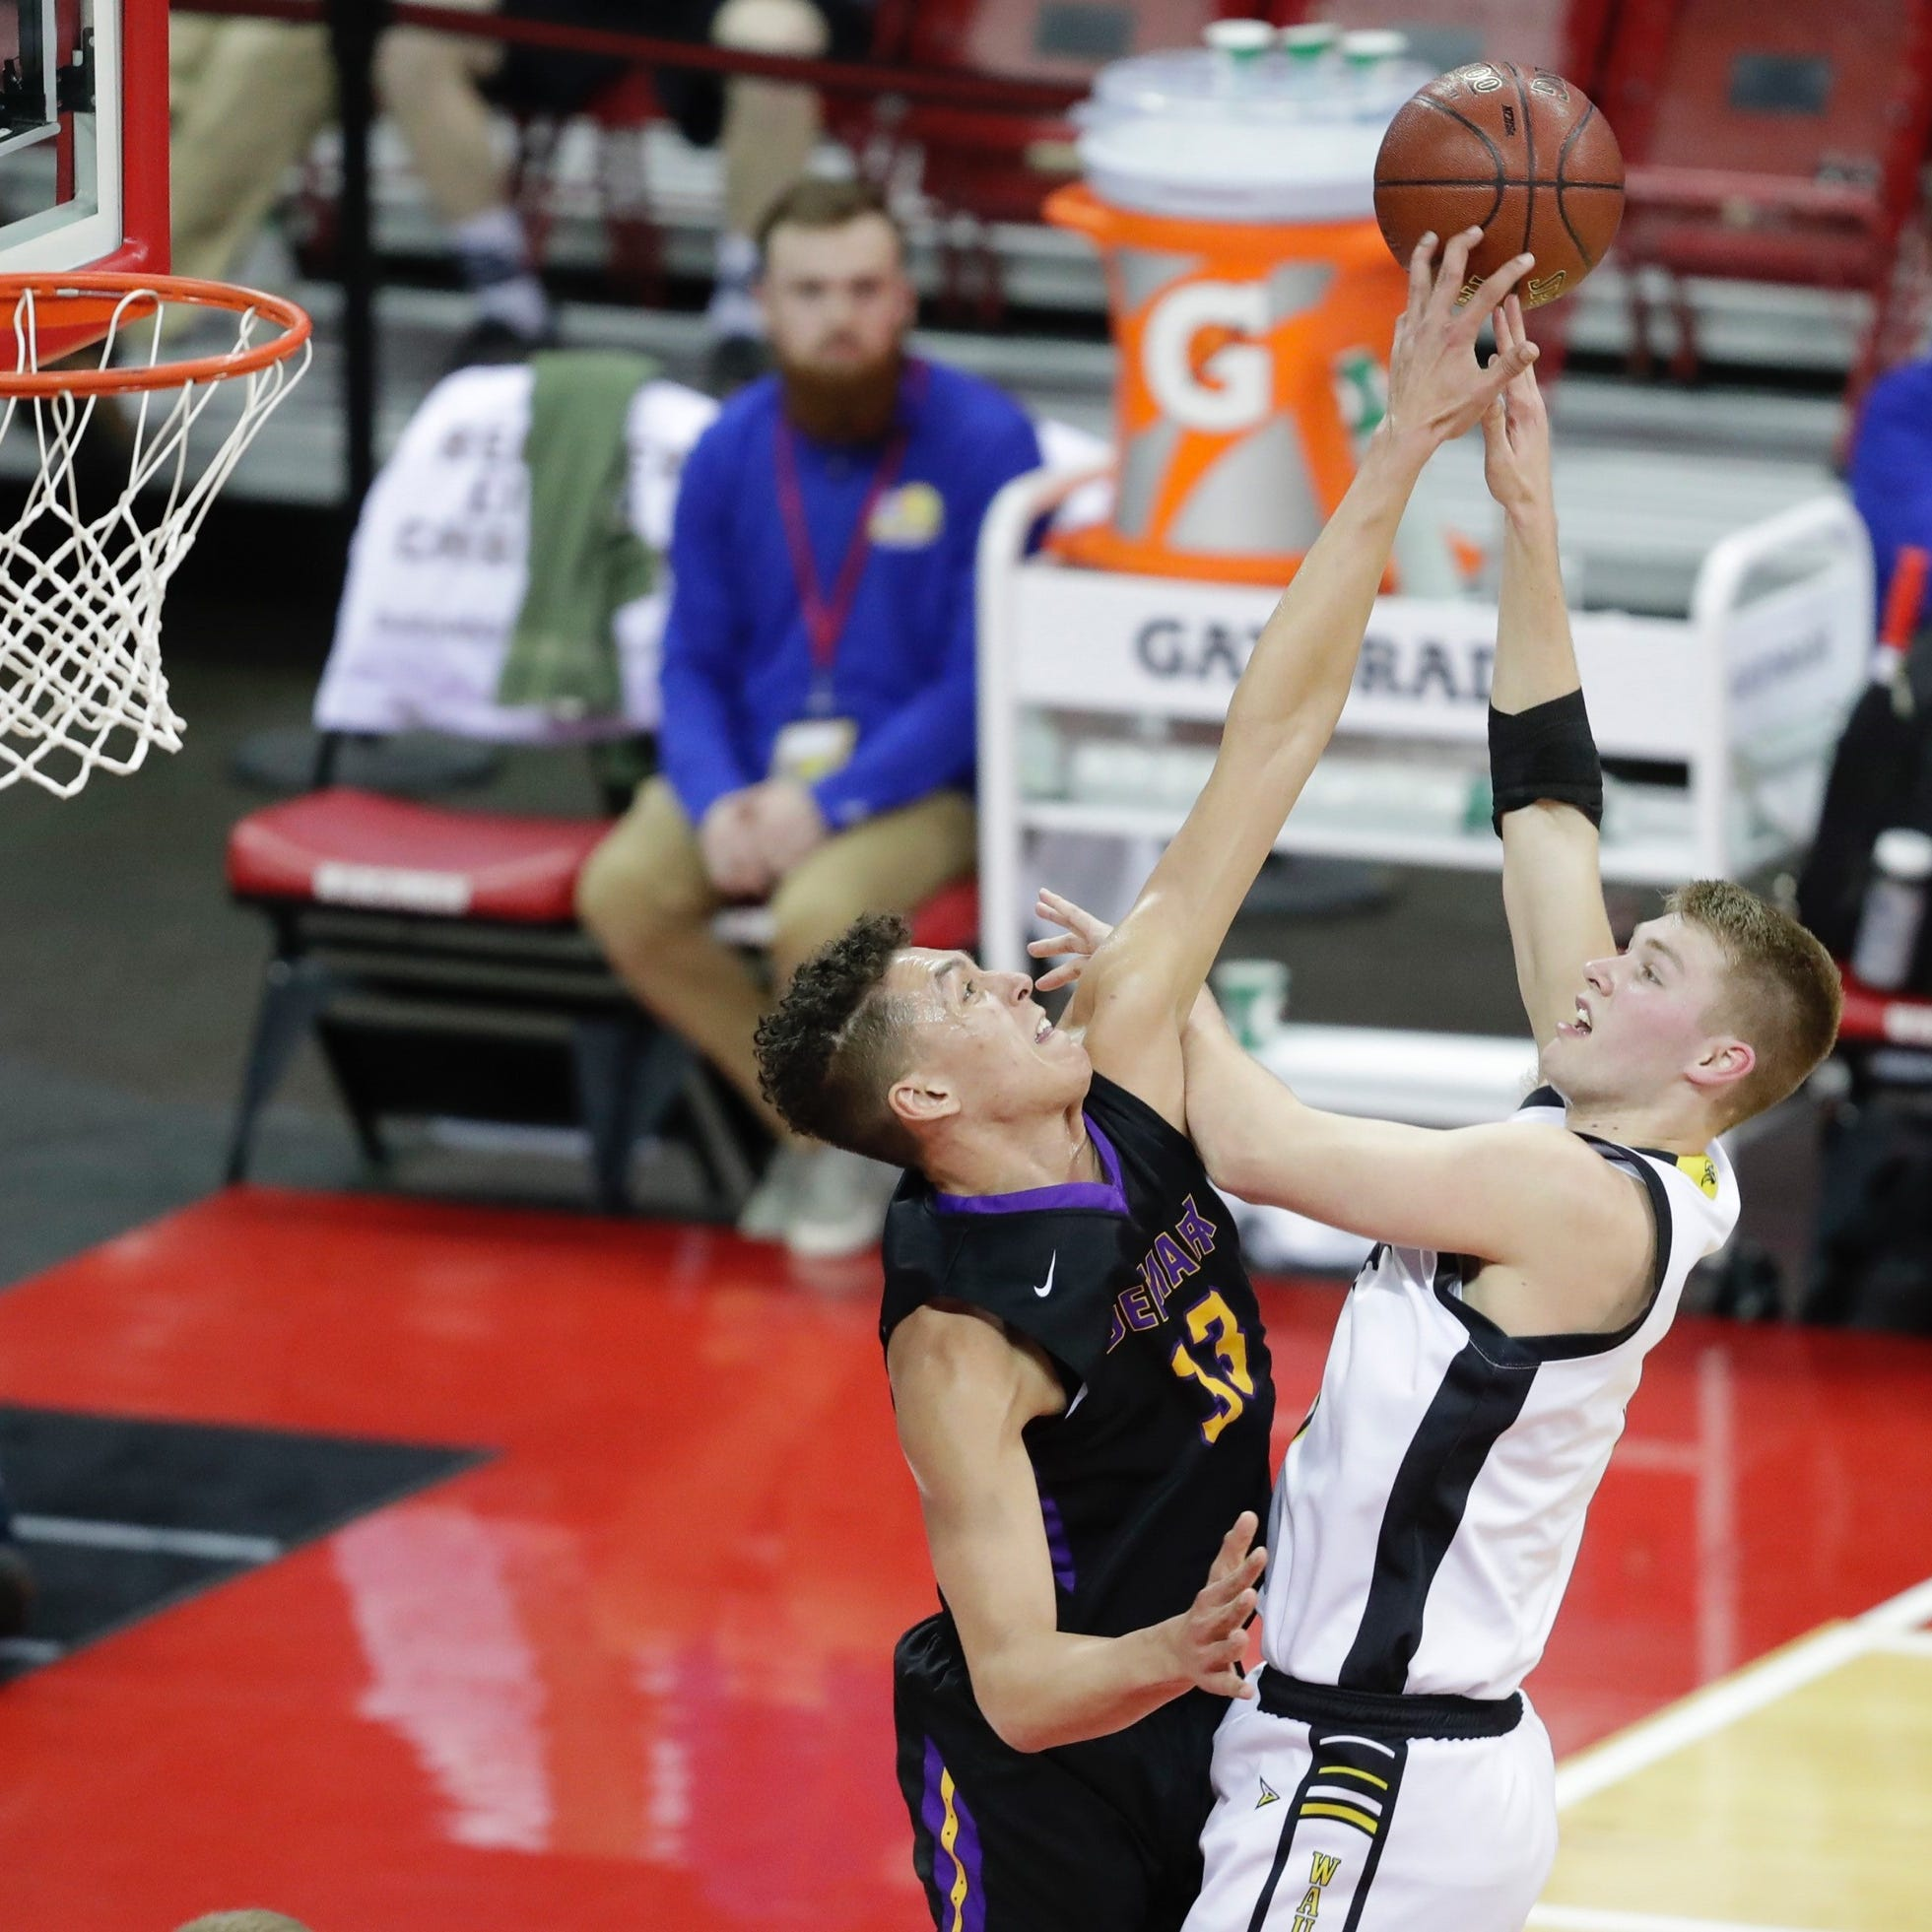 WIAA state basketball: Marcus Domask leads Waupun past Denmark in Division 3 semifinal